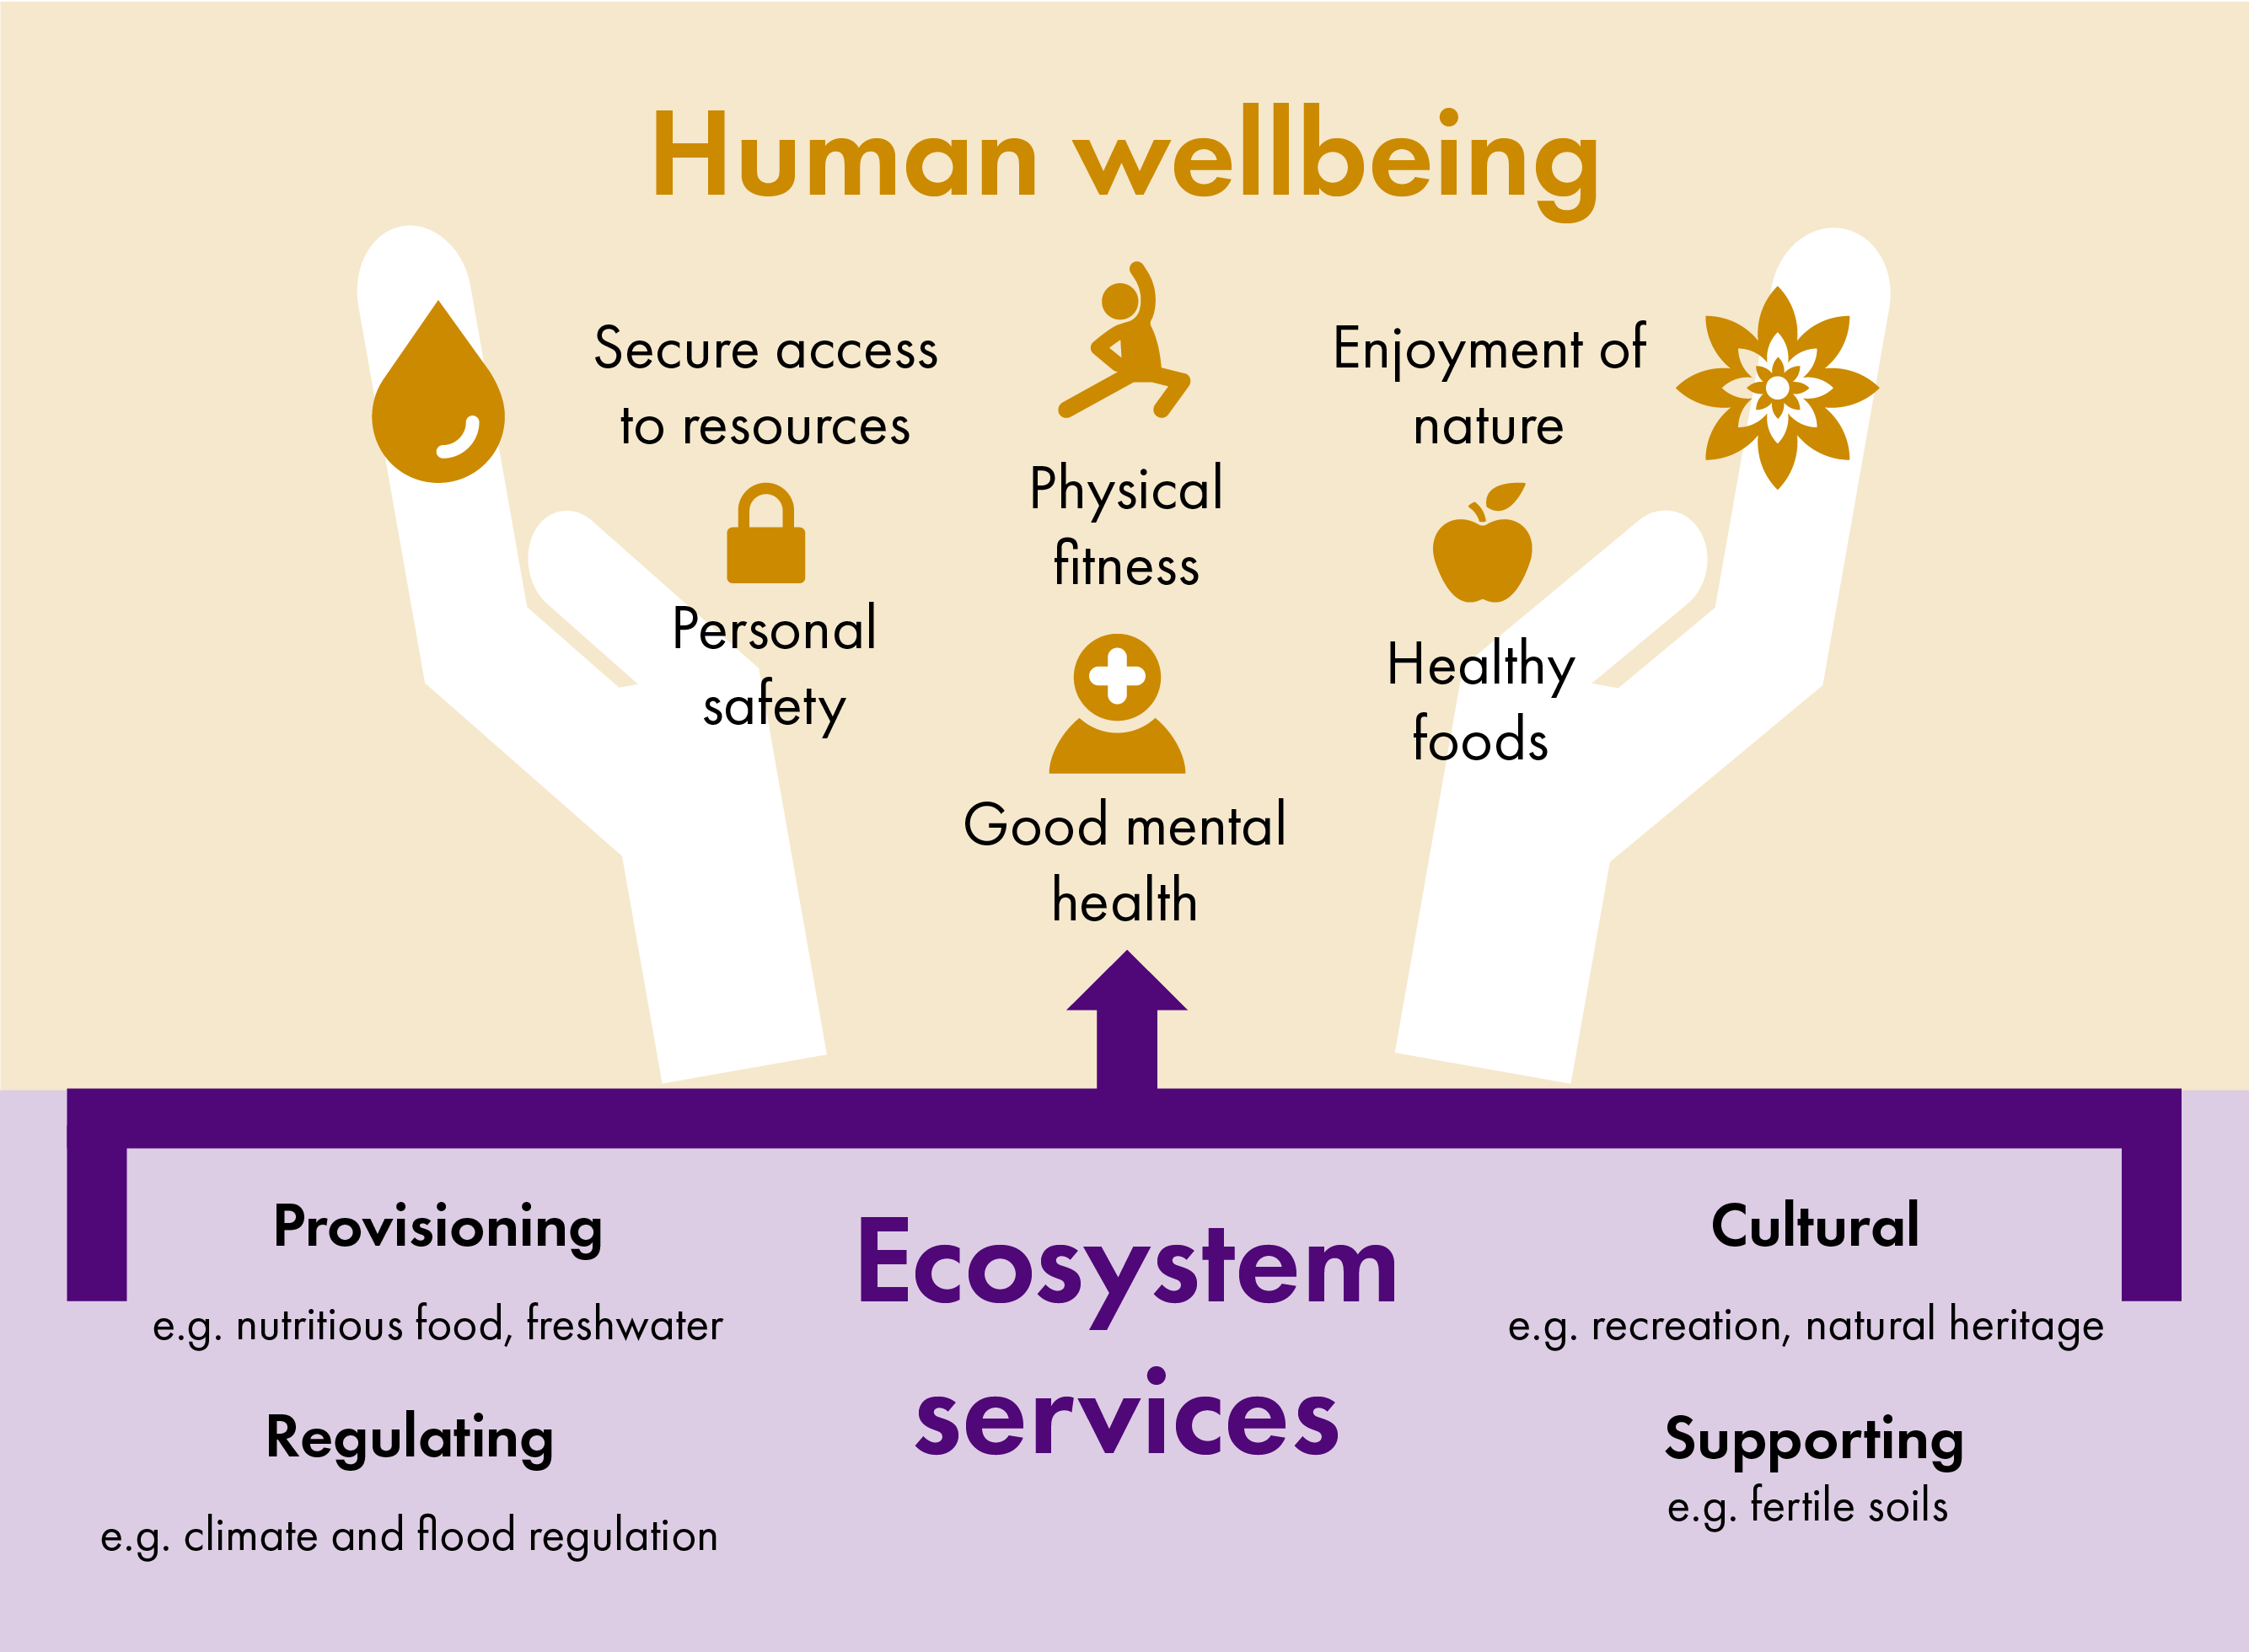 Diagram showing how ecosystem services such as nutritious food, opportunities for recreation, climate and flood regulation and fertile soils support human wellbeing. Aspects of human wellbeing include secure access to resources, personal safety, physical fitness, good mental health, enjoyment of nature and healthy foods.